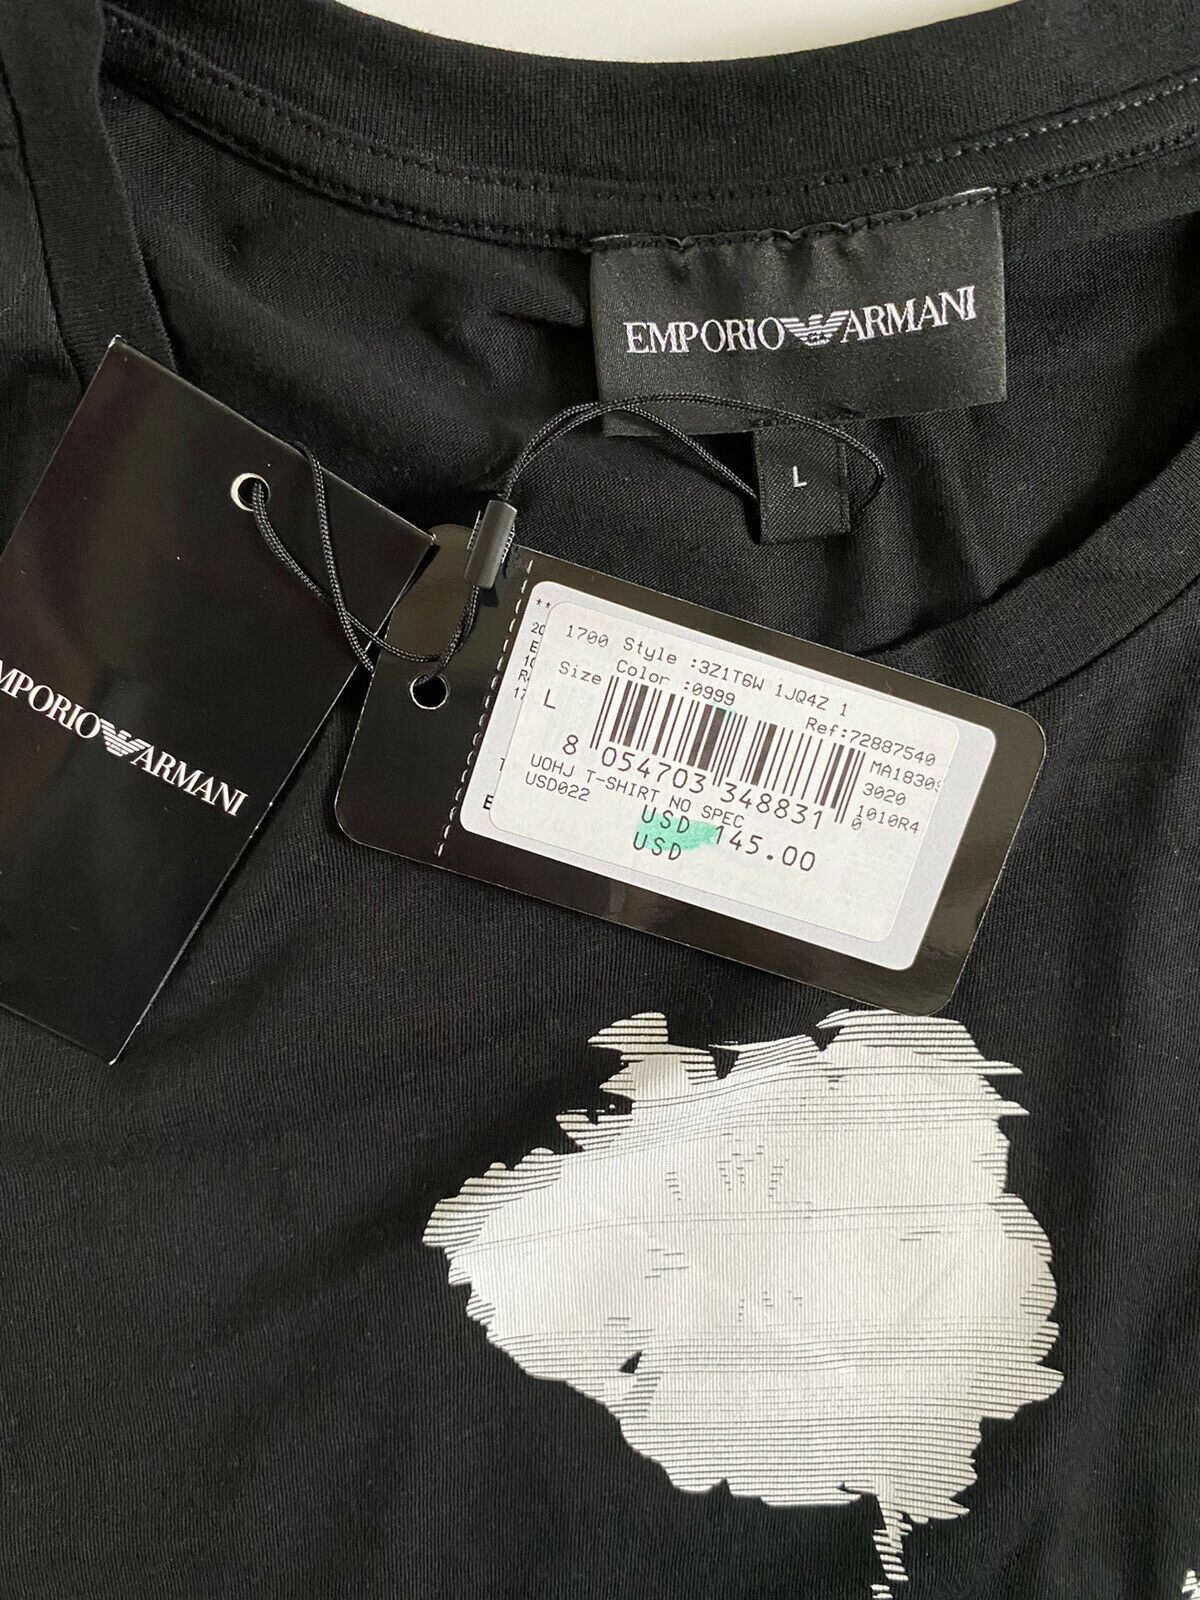 NWT $145 Emporio Armani Men's Black Graphic Short Sleeve T-Shirt Large 3Z1T6W